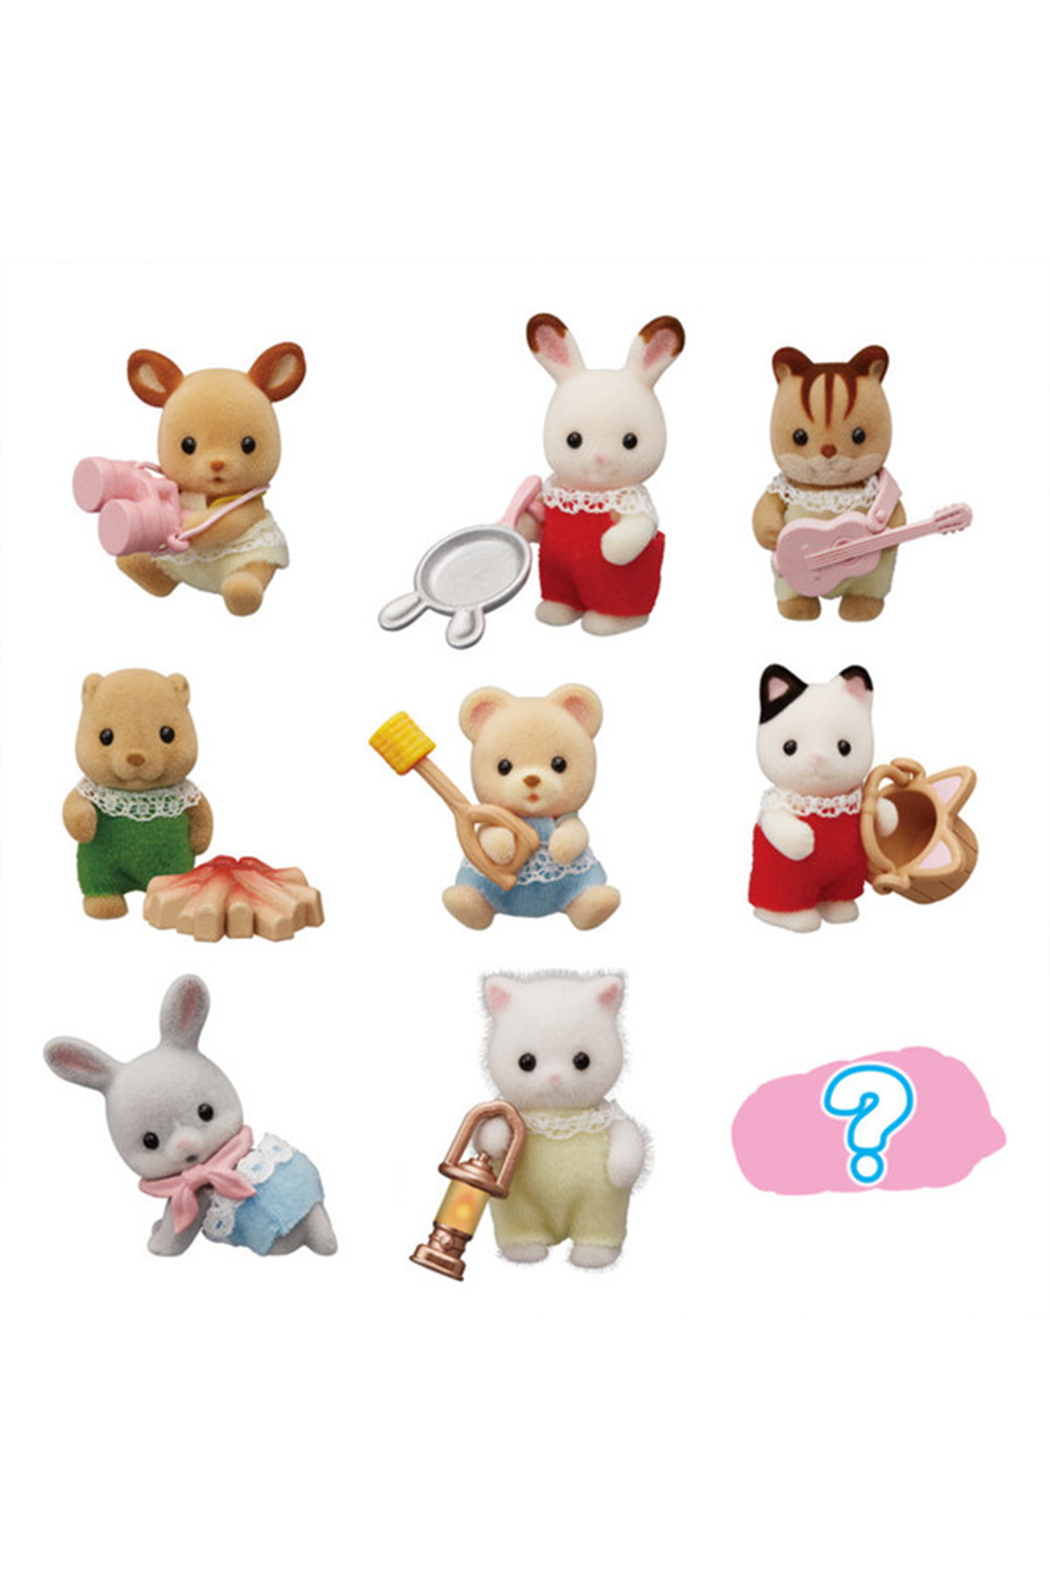 Calico Critters Baby Colleectibles - Baby Camping Series - Main Image